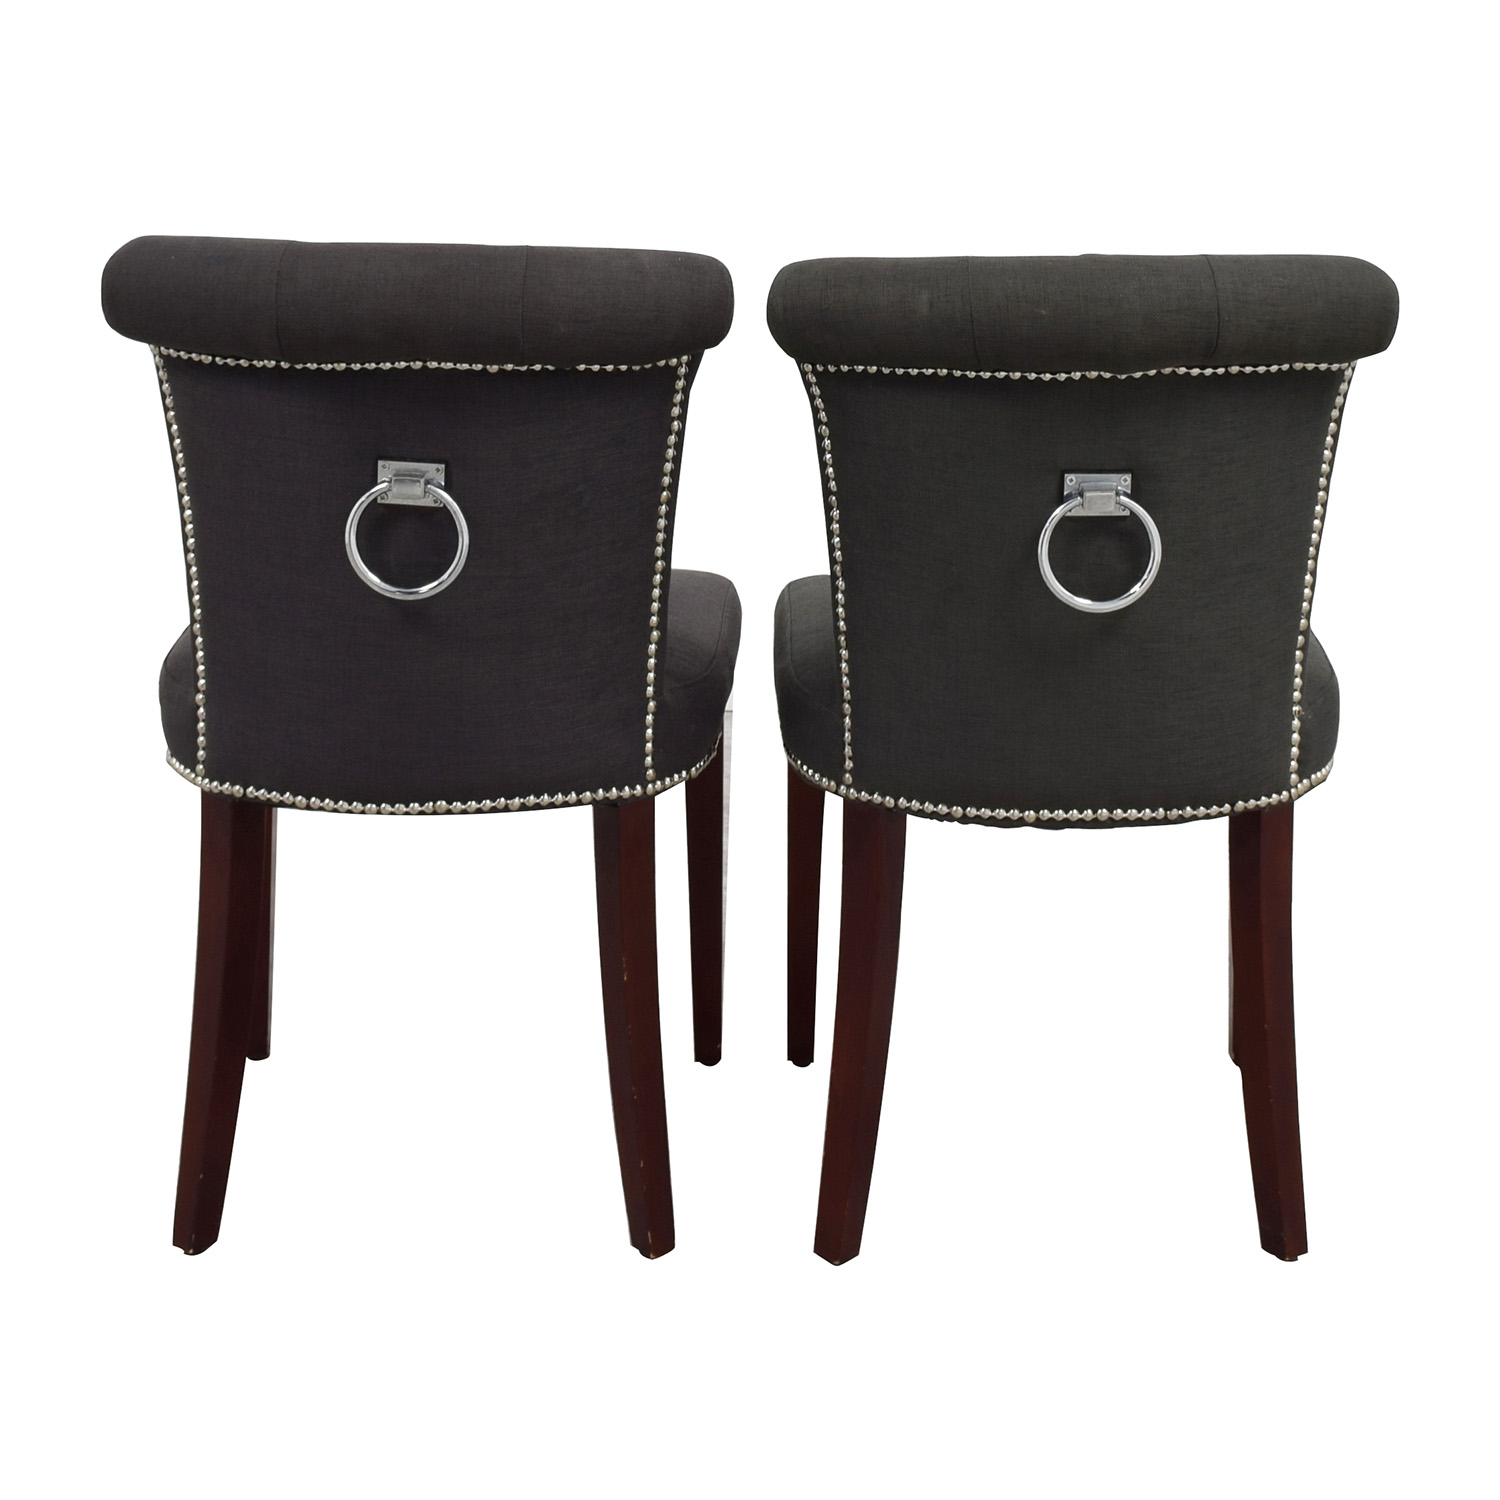 shop Safavieh En Vogue Sinclair Charcoal Nailhead Ring Chairs Safavieh Chairs